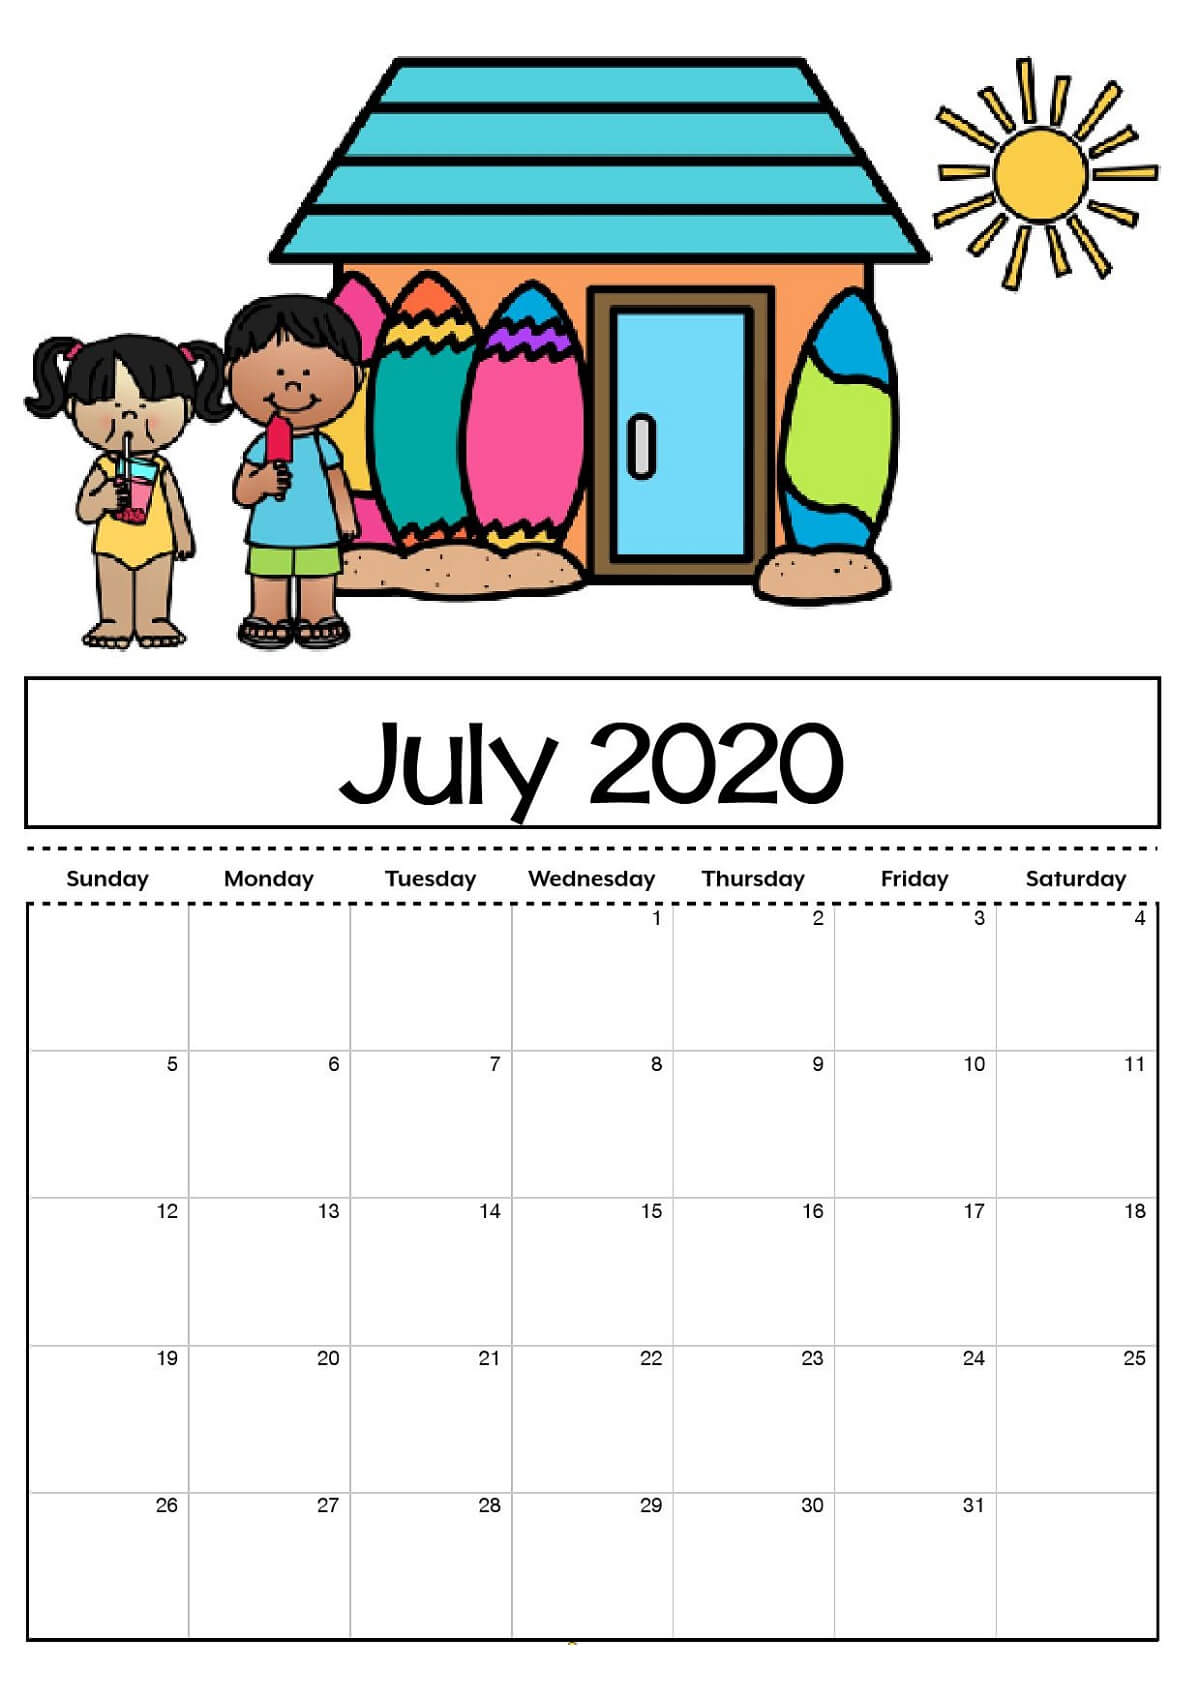 Free Printable Calendar Templates 2020 For Kids In Home For Blank Calendar Template For Kids